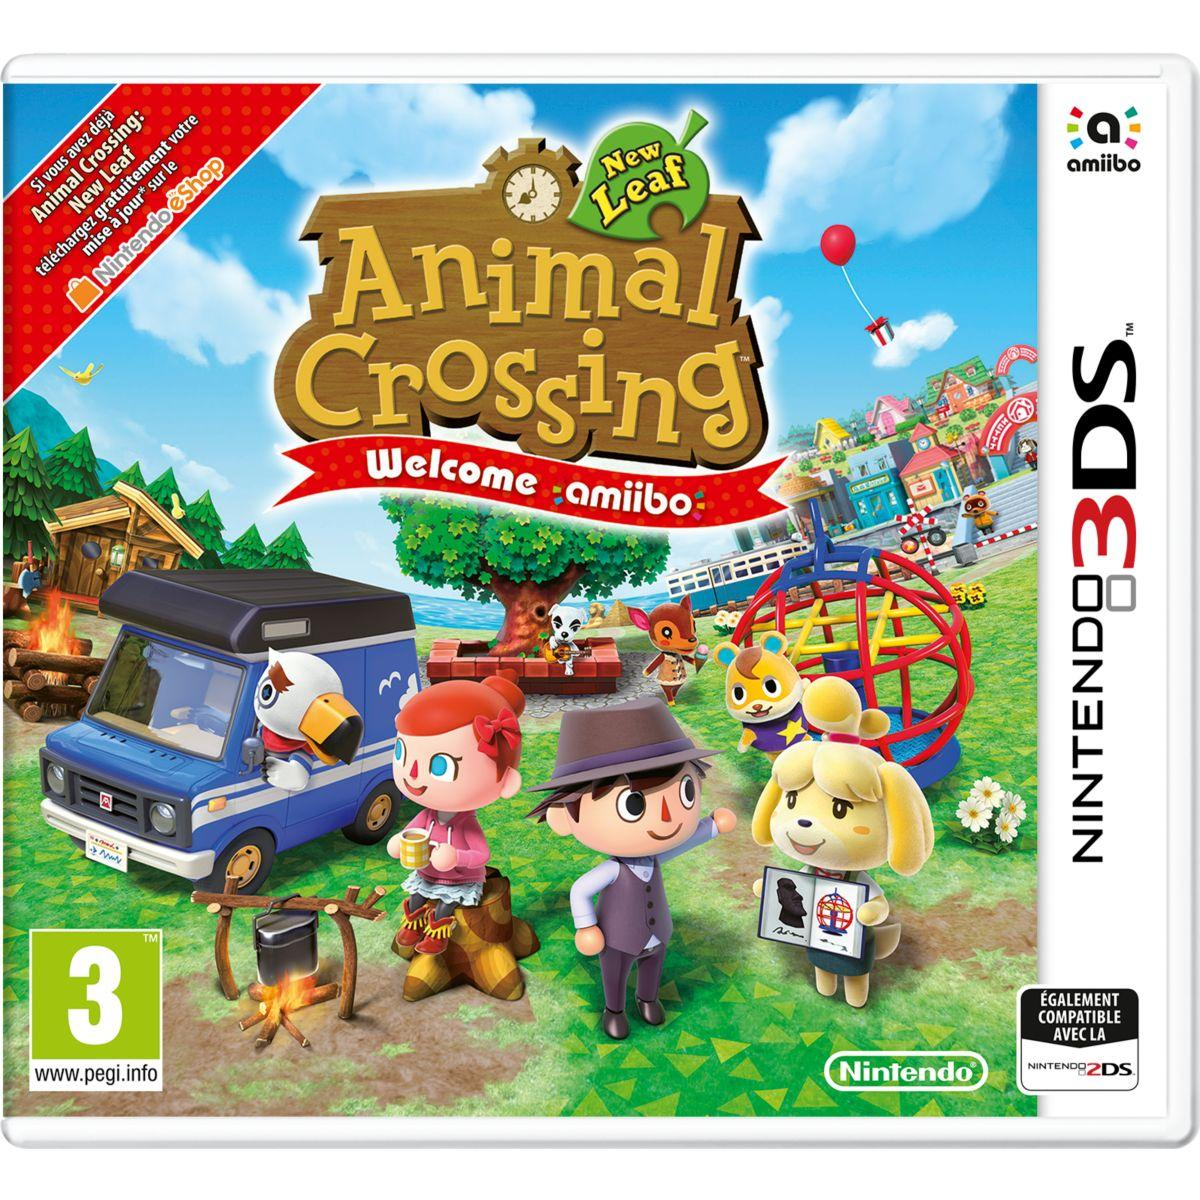 Jeu 3ds nintendo animal crossing new lea - 2% de remise immédiate avec le code : cool2 (photo)